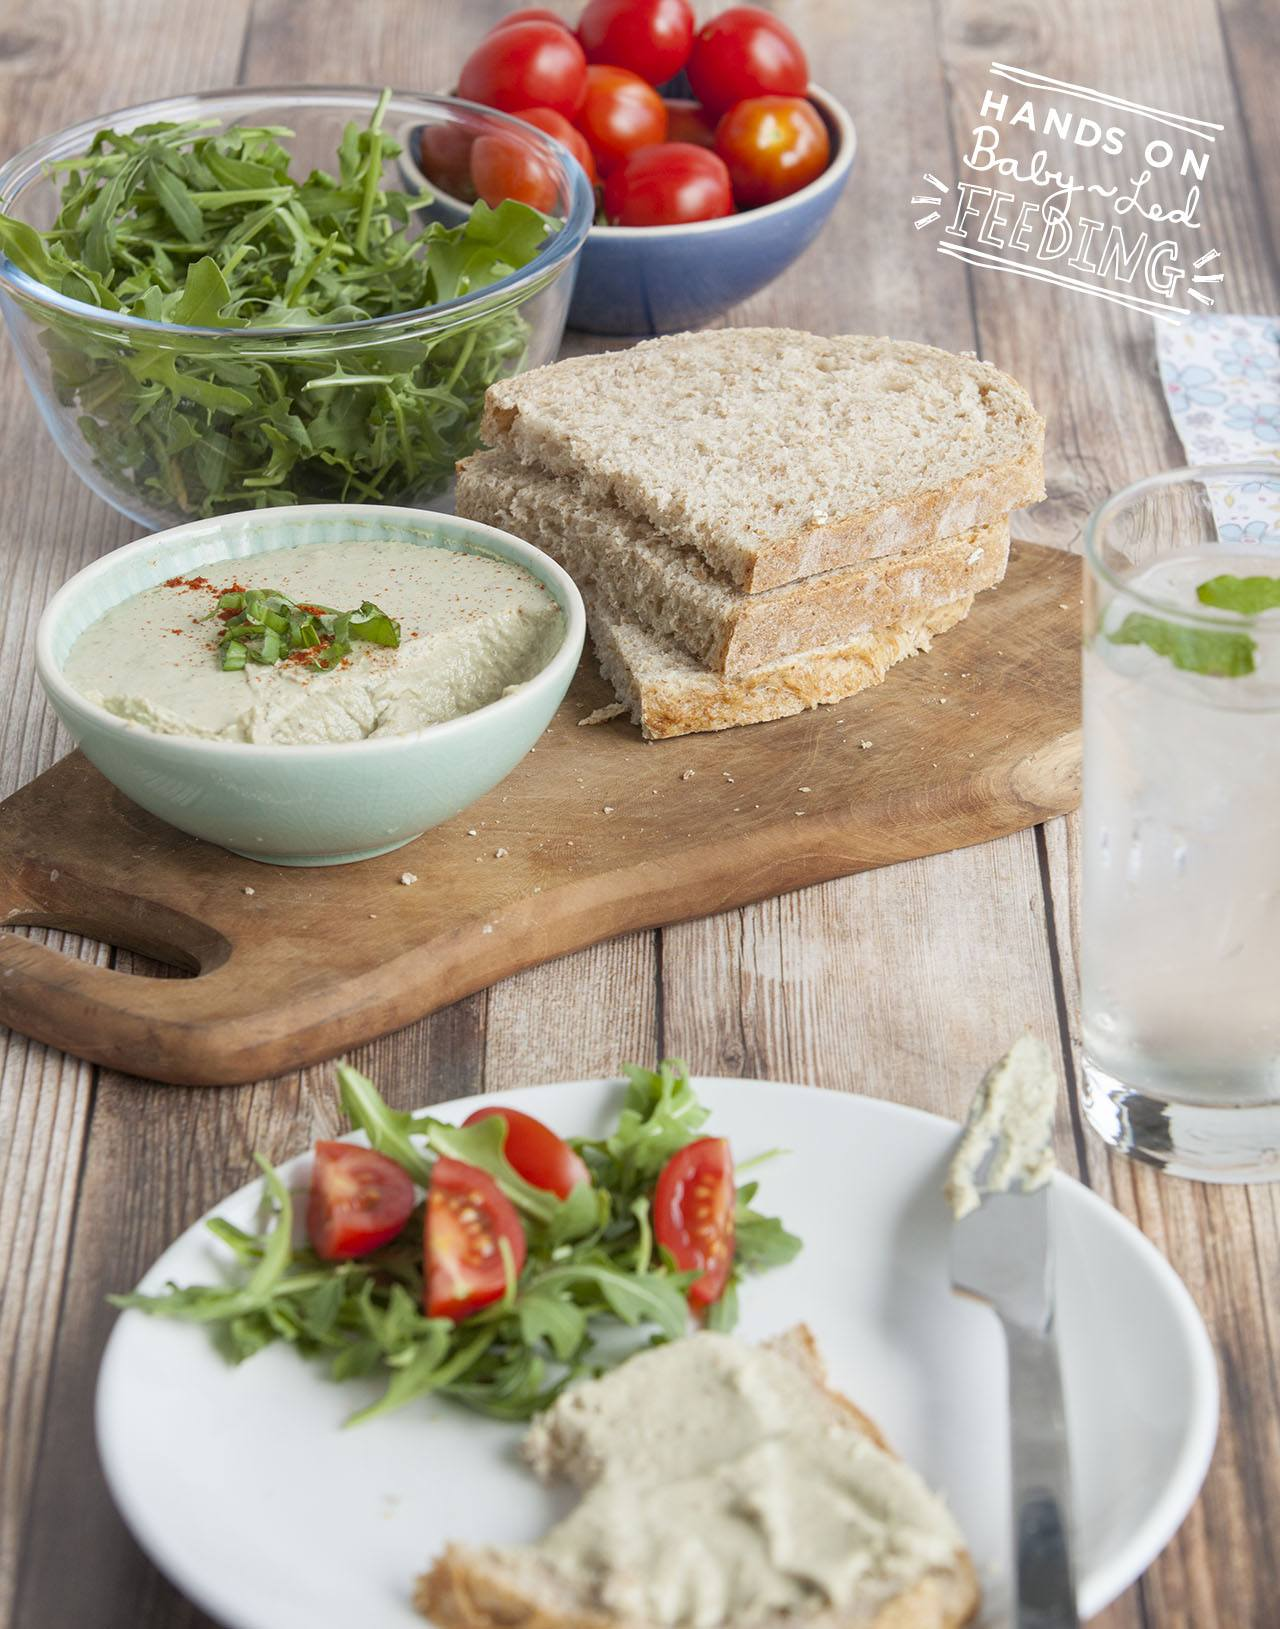 Baby led weaning mackerel pate with salad. Long recipe image. This is a perfect baby lunch recipe packed with Omega-3 rich fish and full of vitamins. Lunch ideas for baby led weaning that are easy and quick. Yummy finger foods for babies.